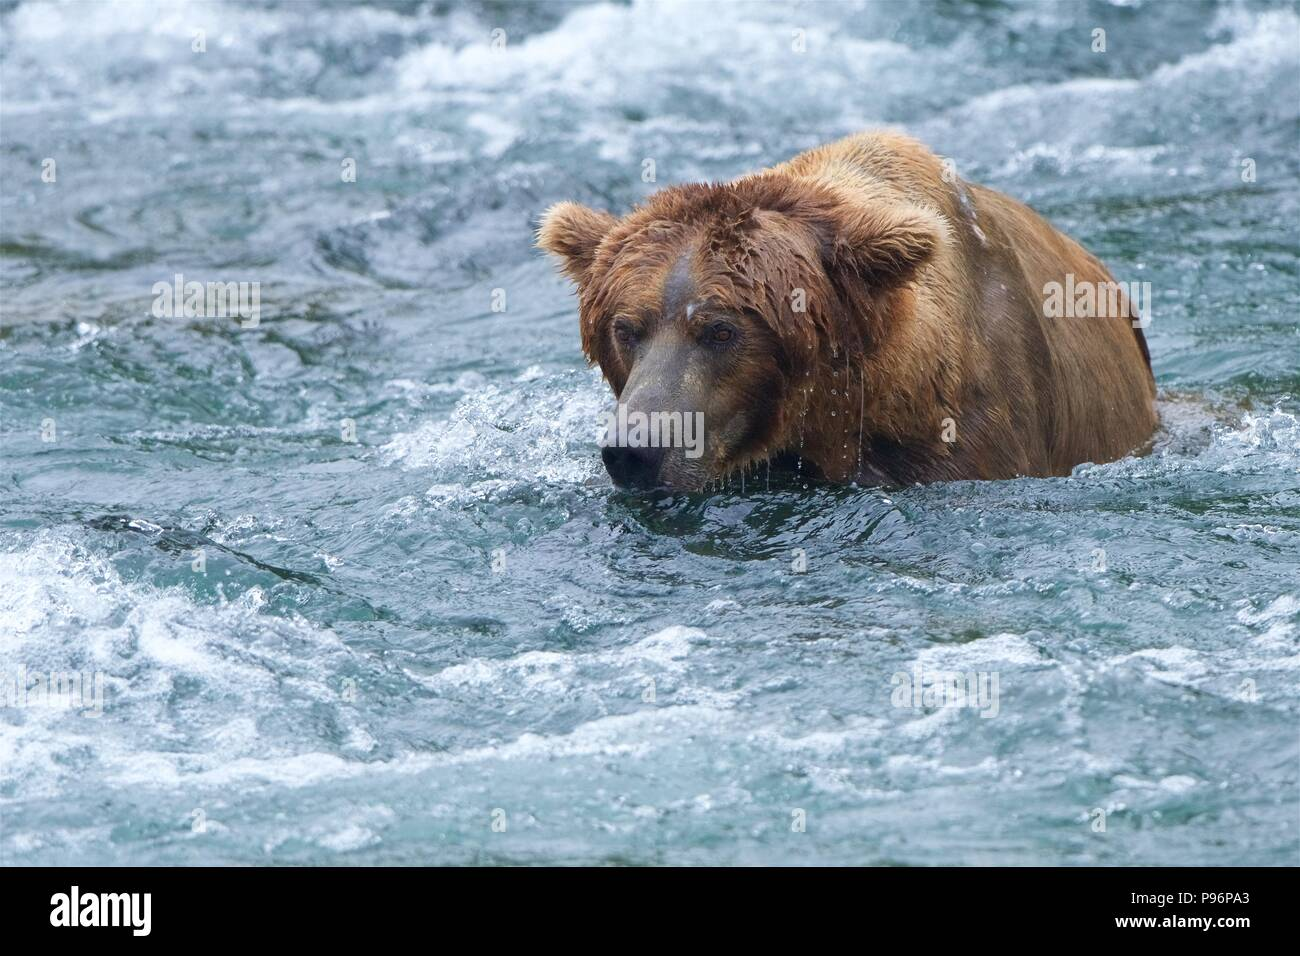 A Grizzly bear patiently waits in the frigid after, trying to catch a salmon in Brooks Falls, Katmai, Alaska - Stock Image